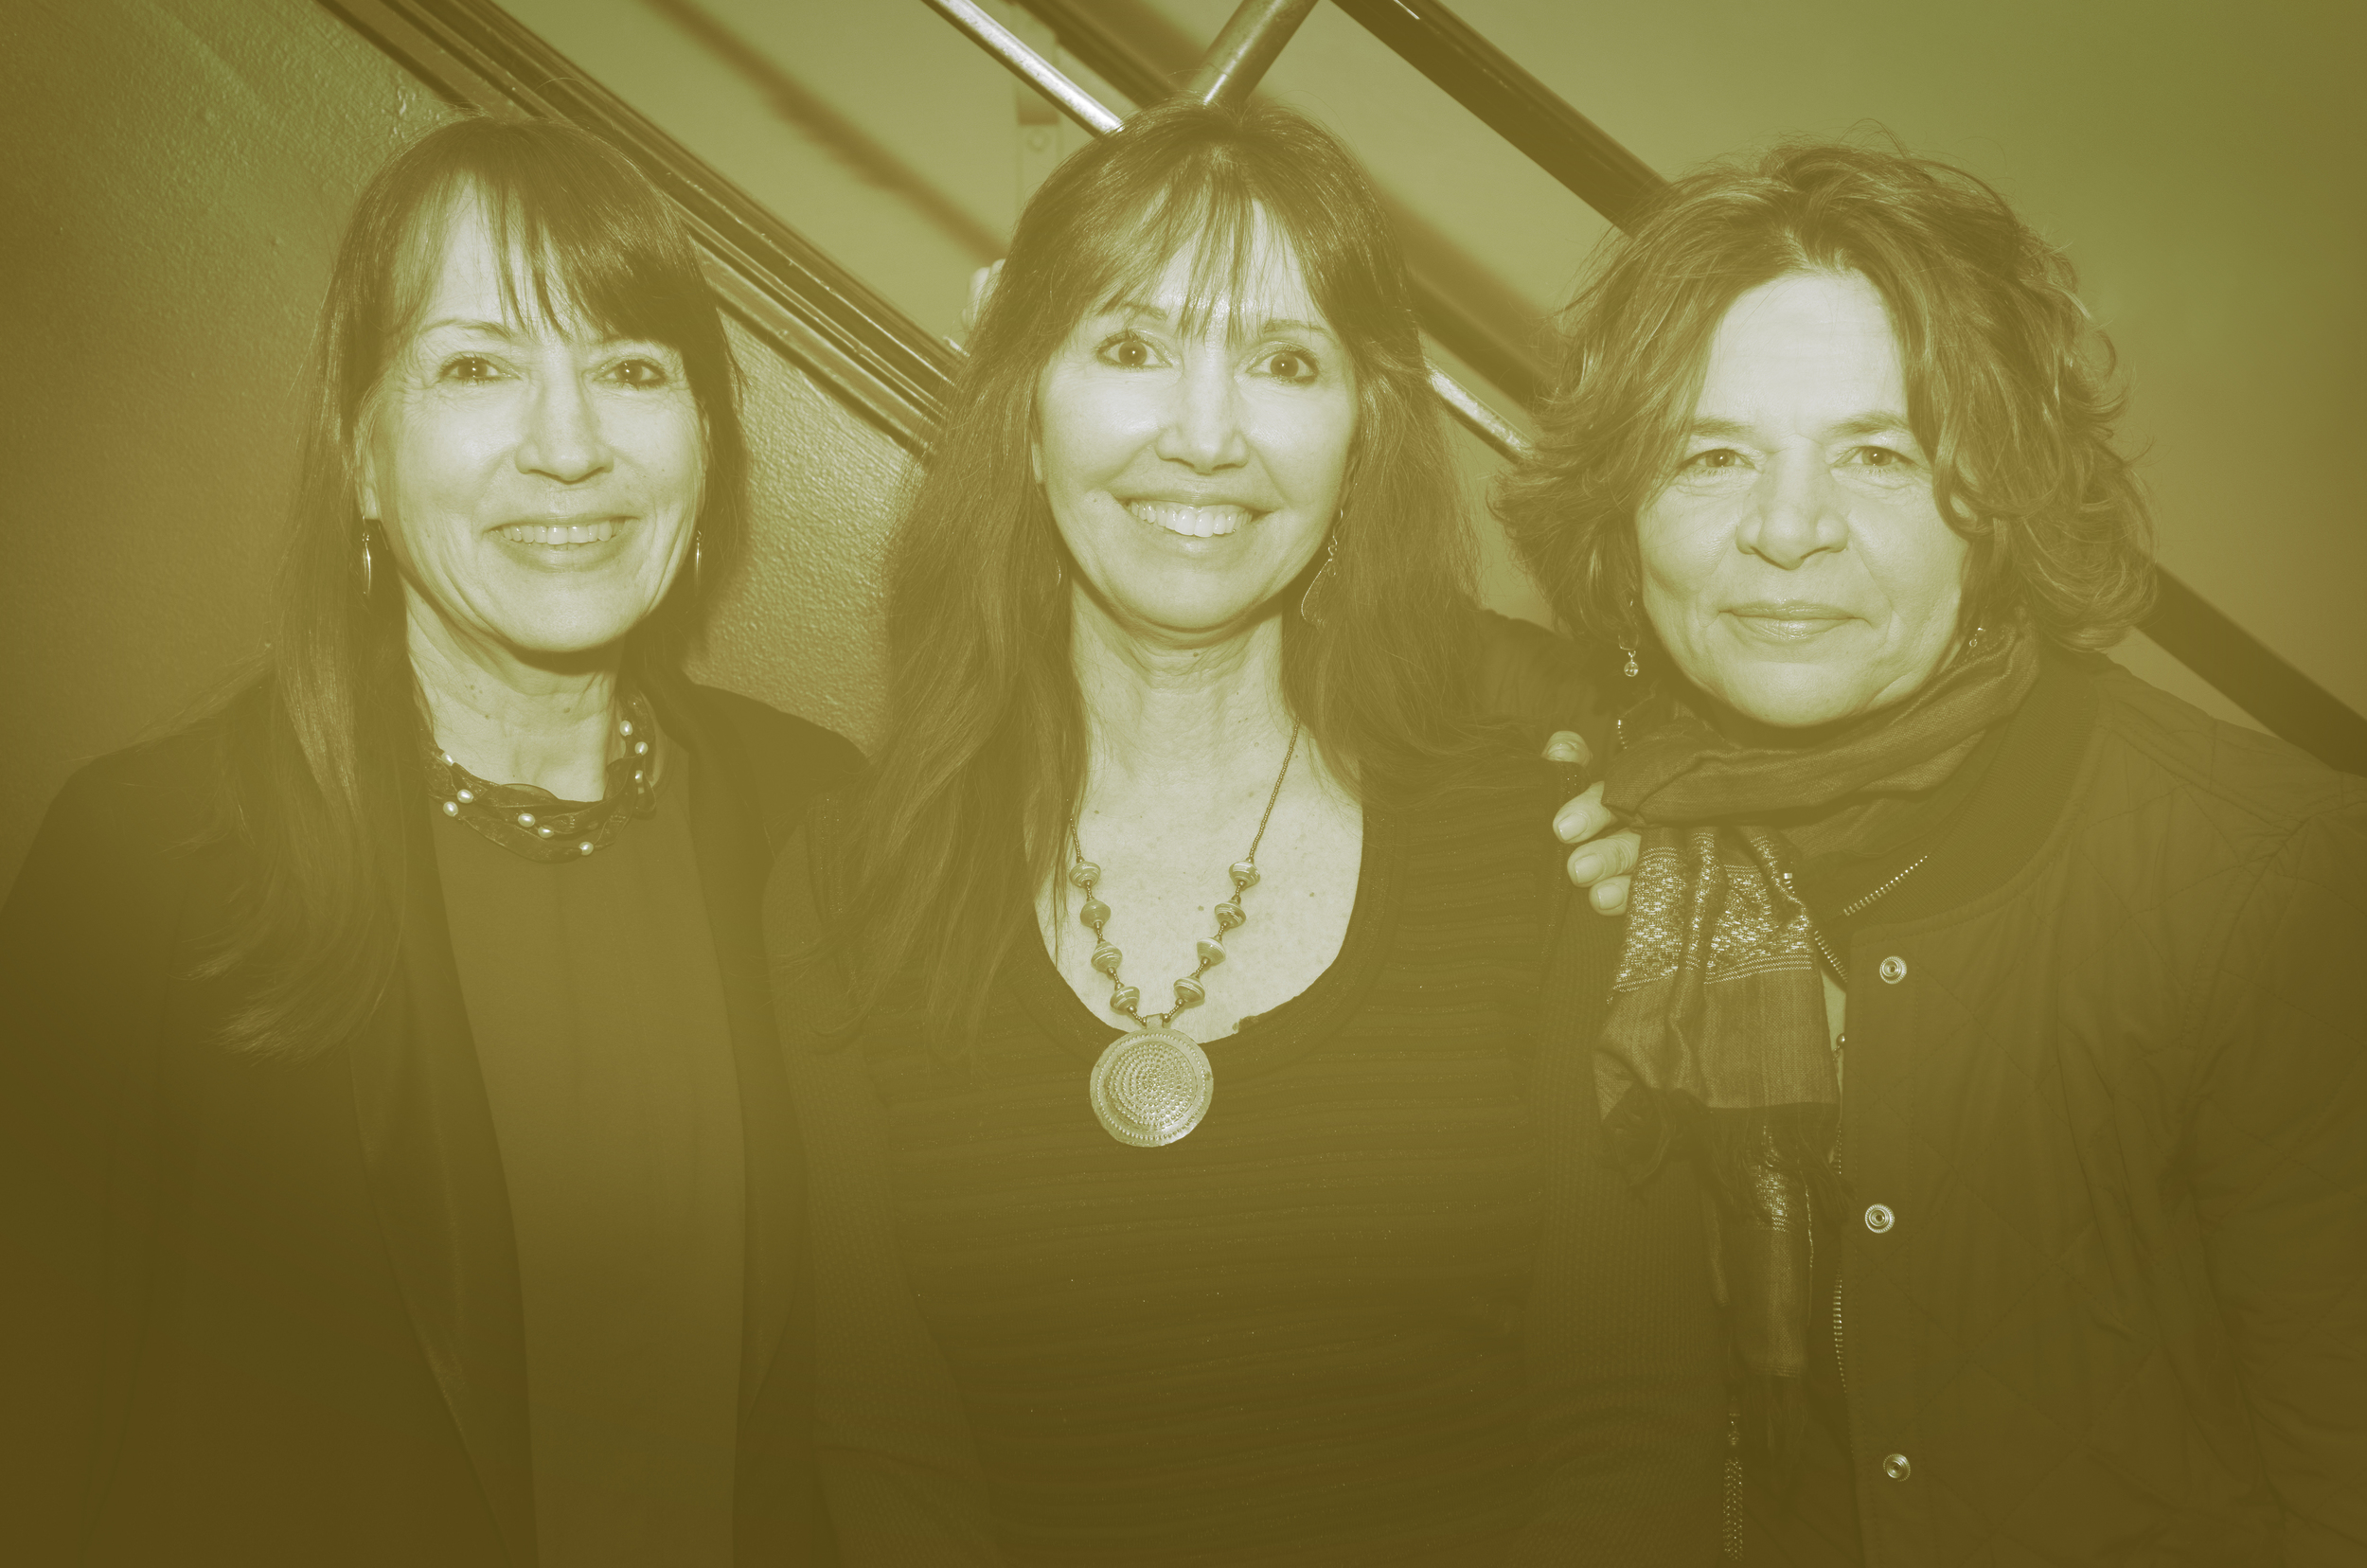 Deborah Parks (Producer), Shelley Saywell (Director/Writer),  Lorraine Segato (Creator/Activist/Songwriter)